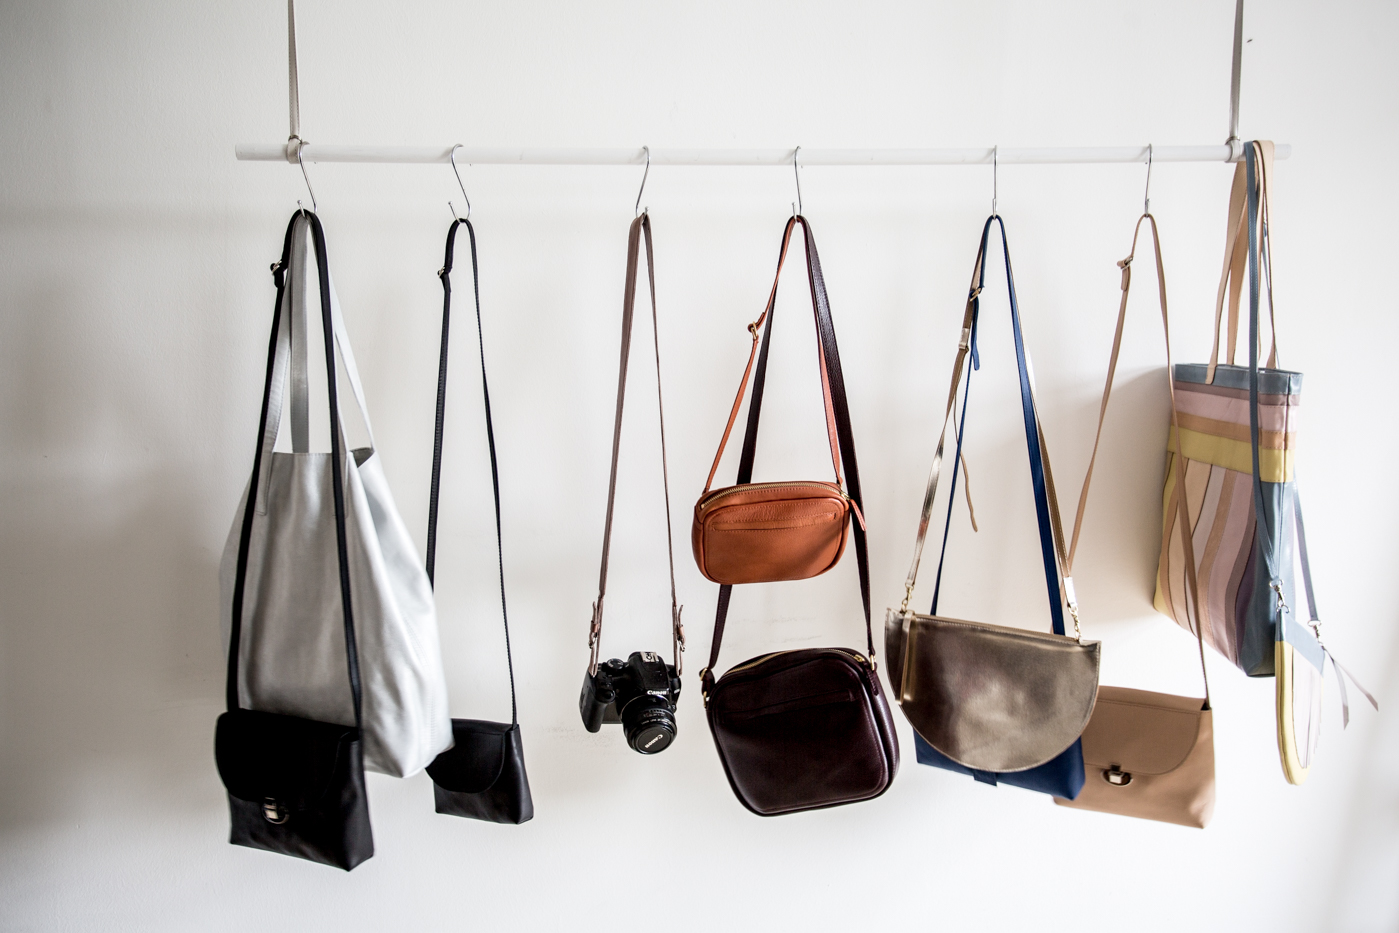 LEATHER BAGSTAGE - Blogpost